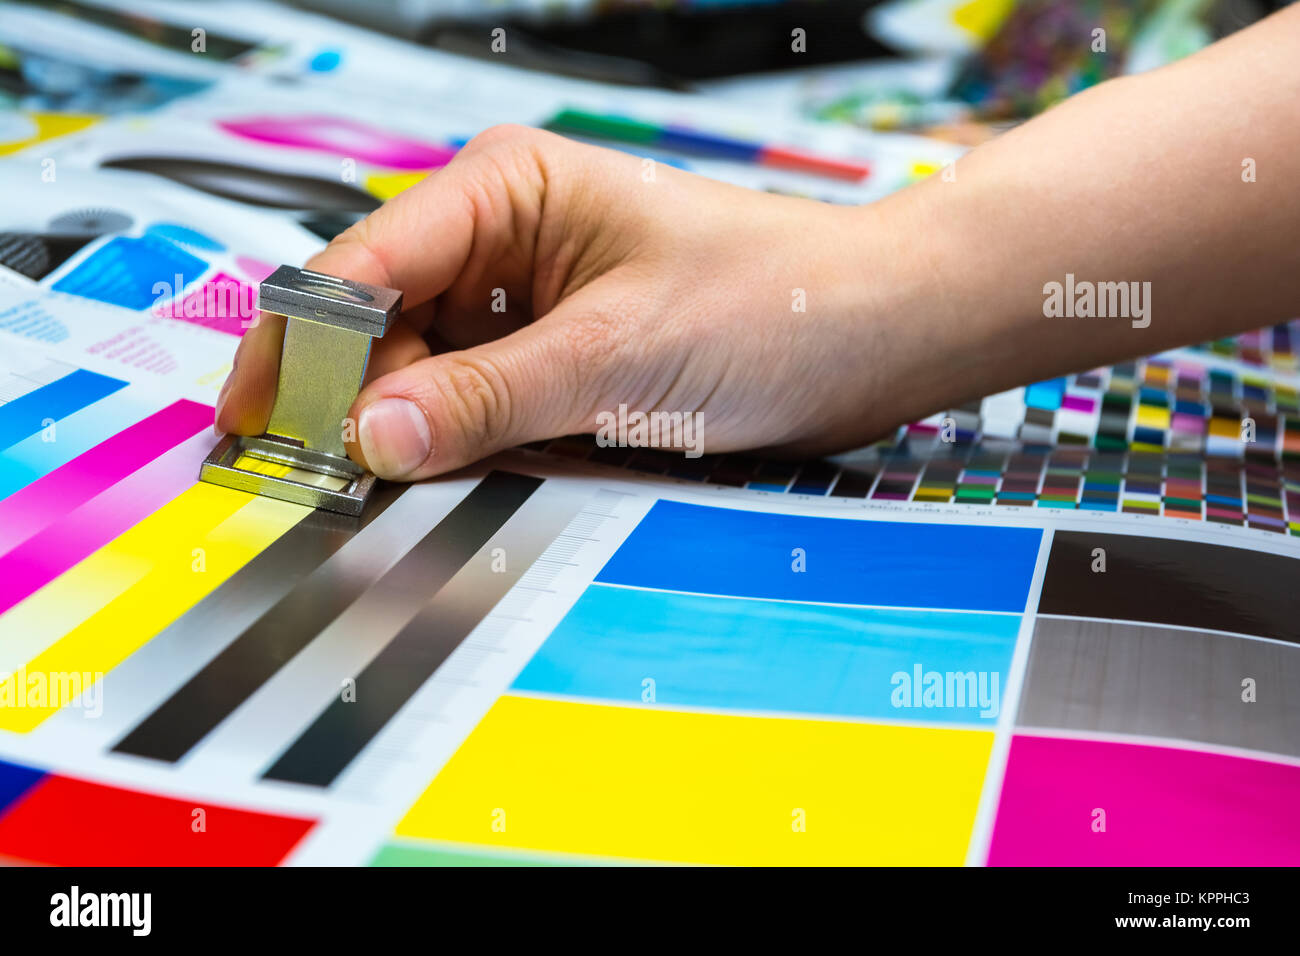 Printing Thread Counter Being Used by Female Hand Measurement Color Management Closeup Industry Object - Stock Image